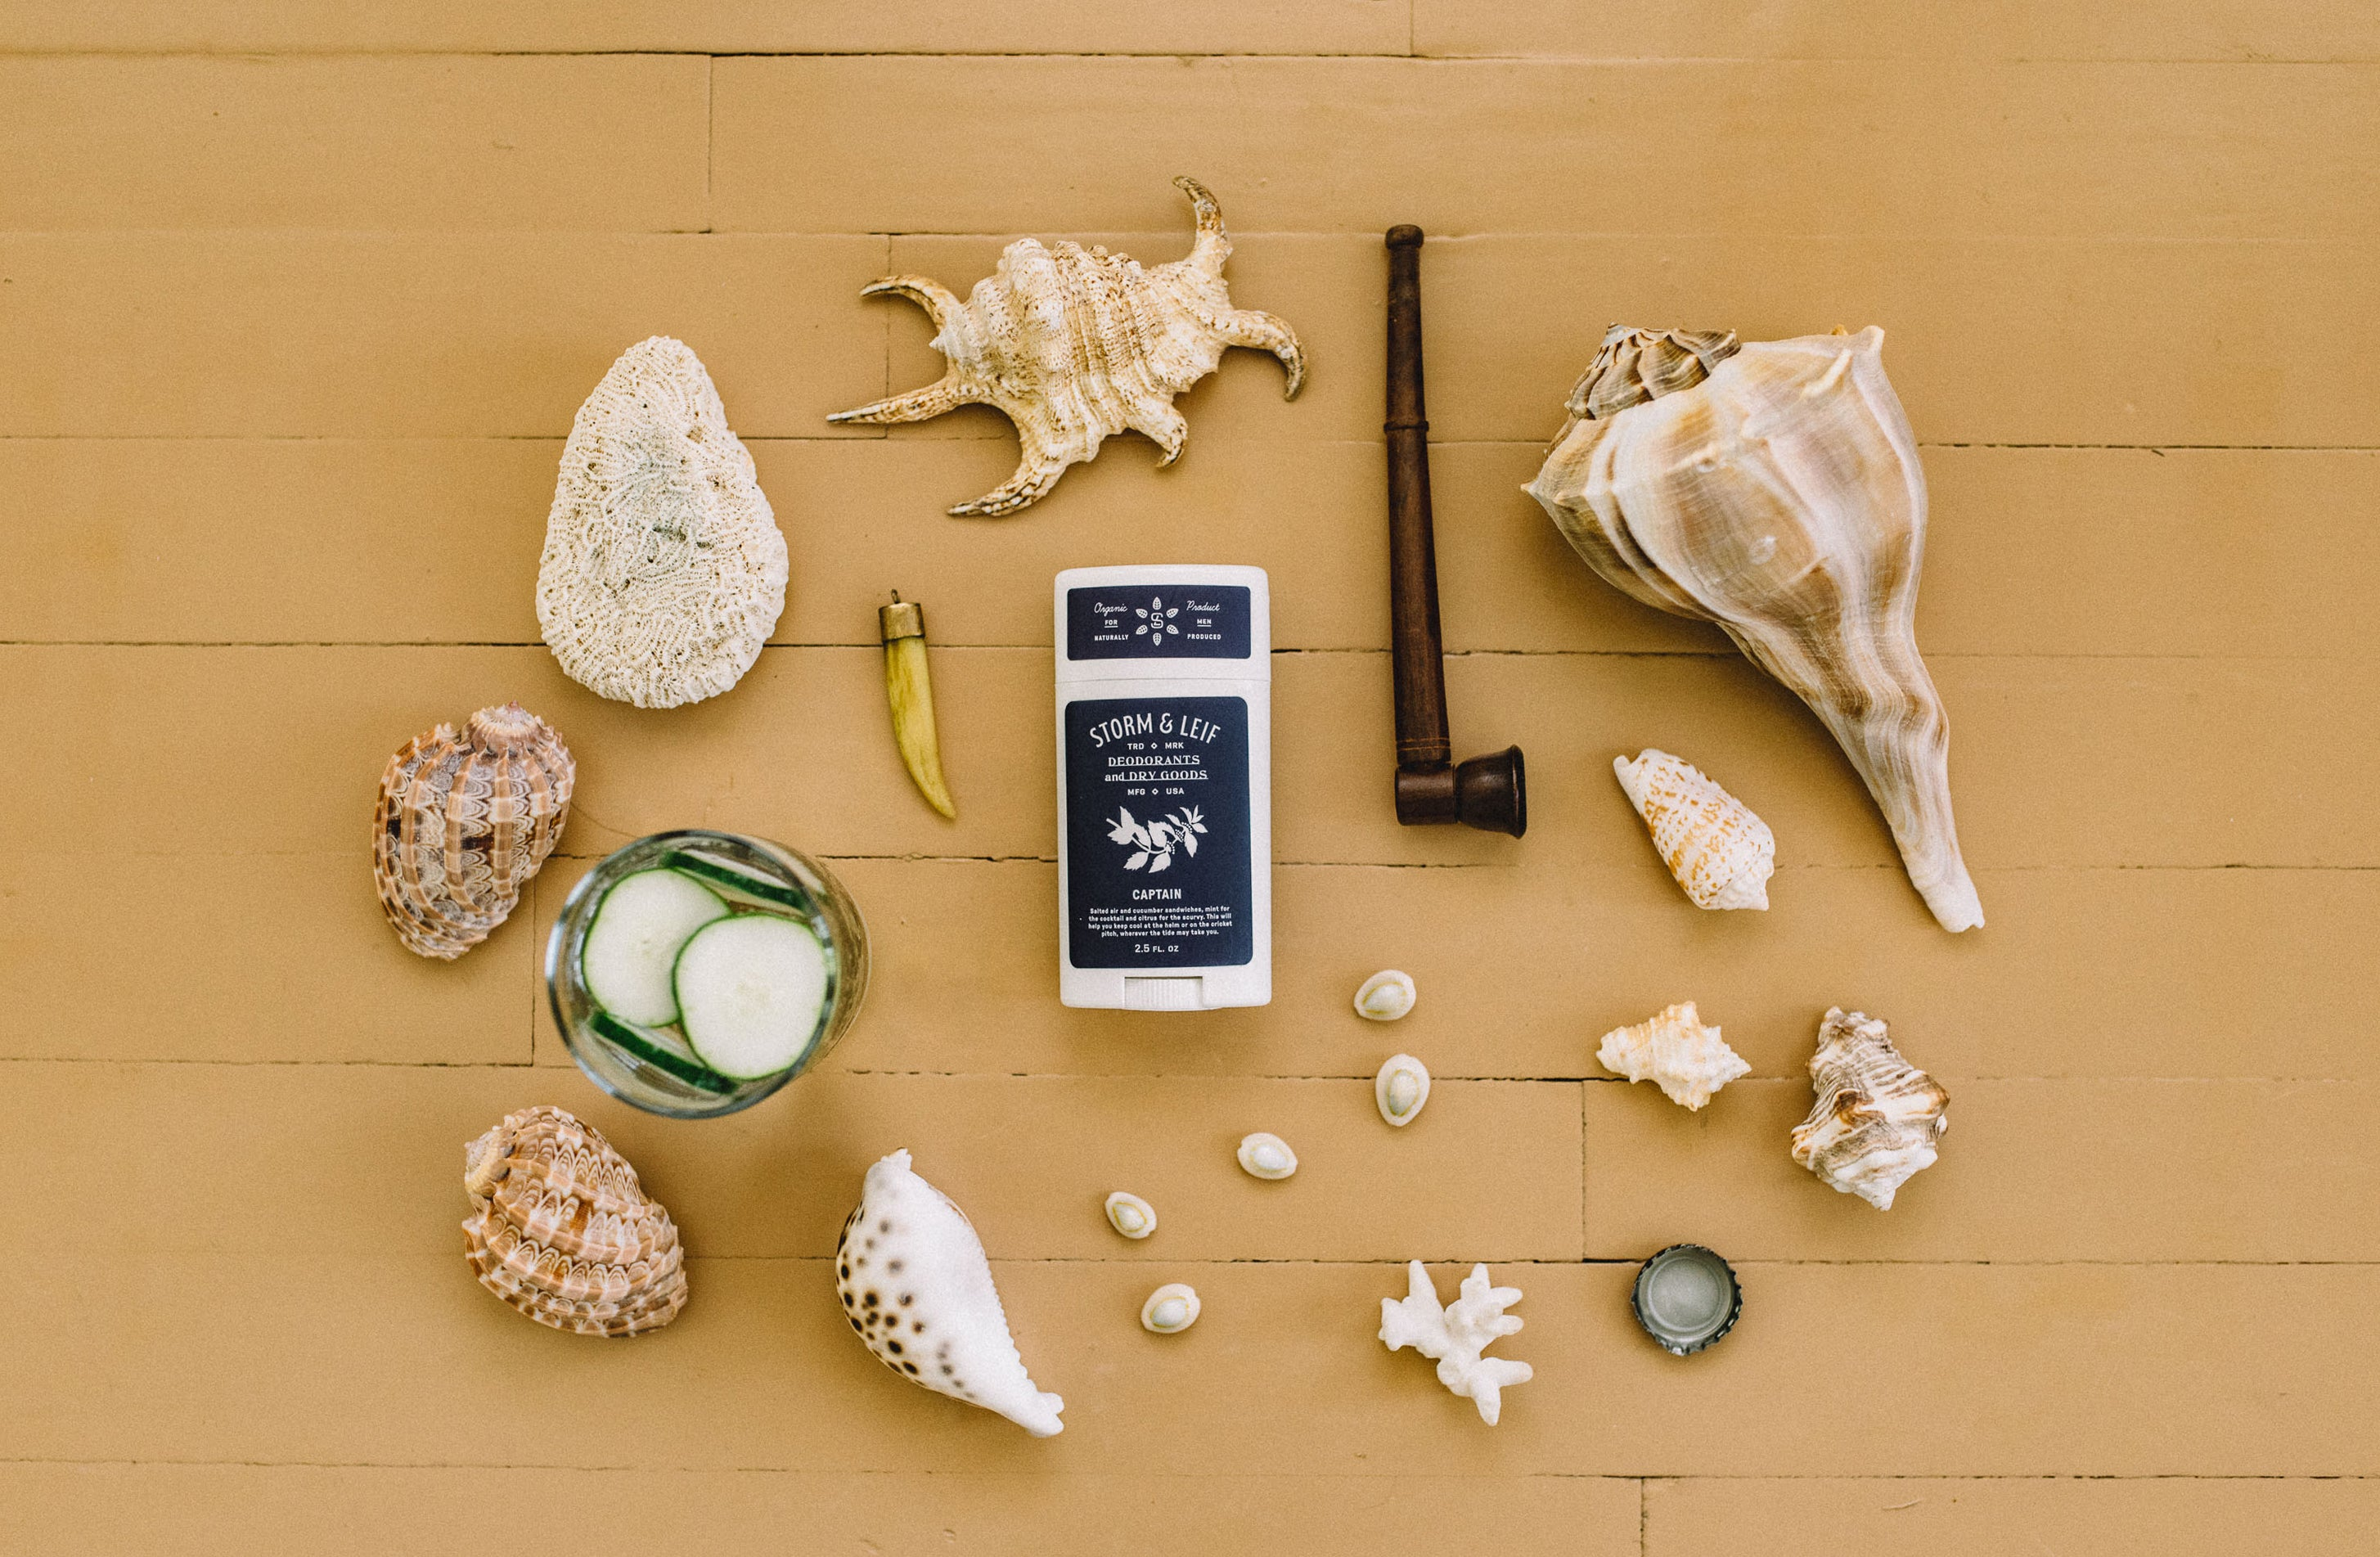 Vegan deodorant for men that works. 100% organic and all natural. Captain by Storm & Leif.